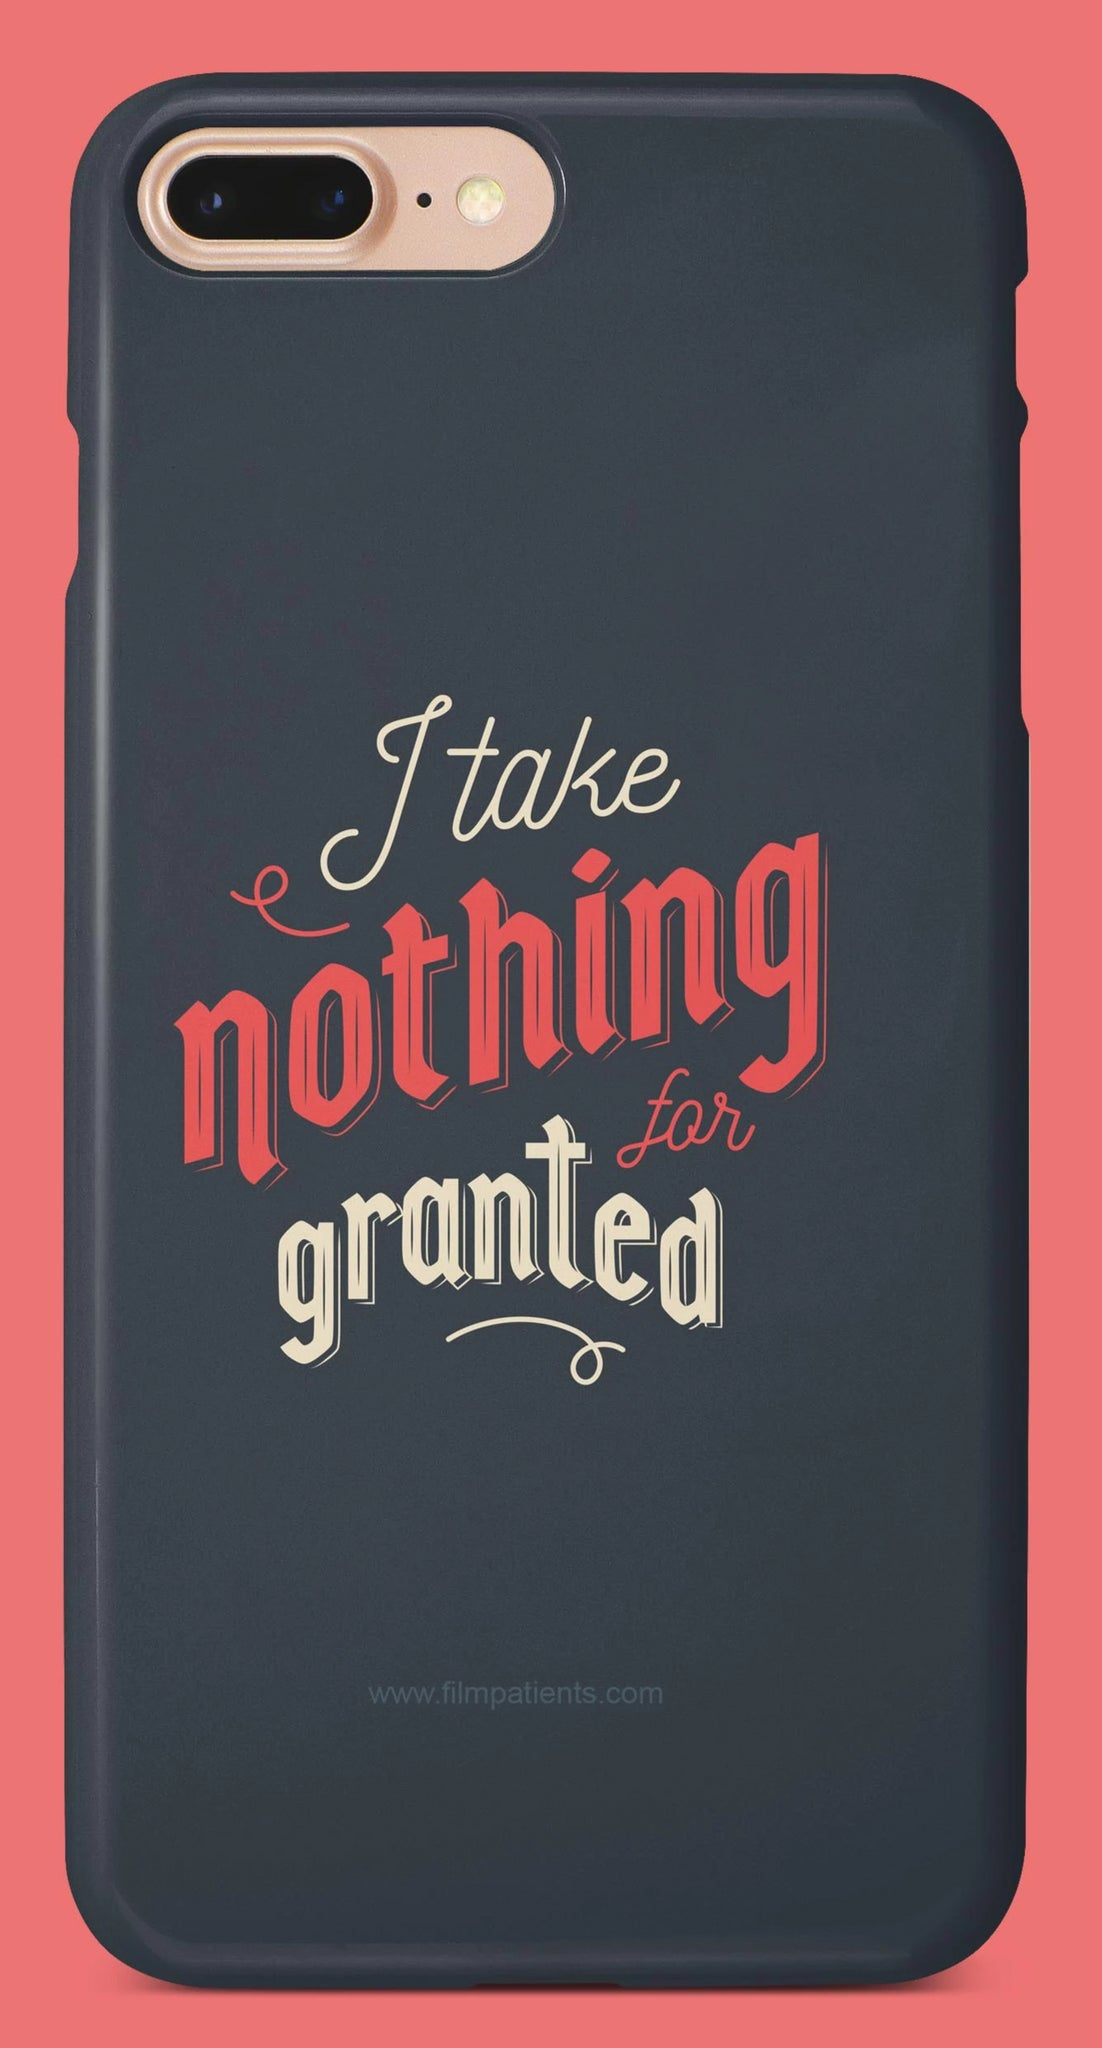 I Take Granted Designer Cover | Film Patients